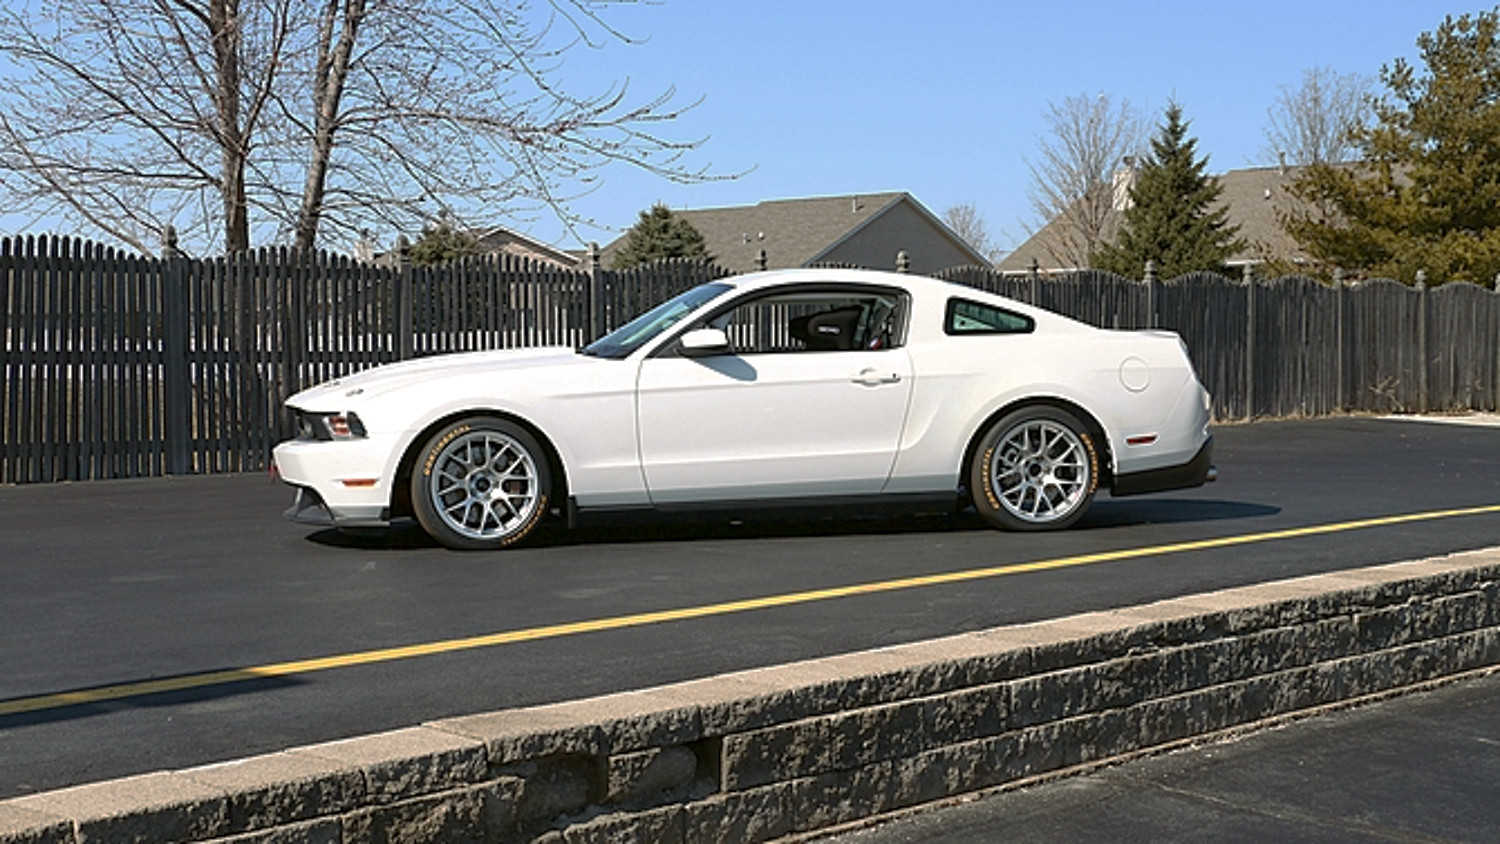 2012 Ford Mustang Boss 302r Prototype For Sale Motrolix